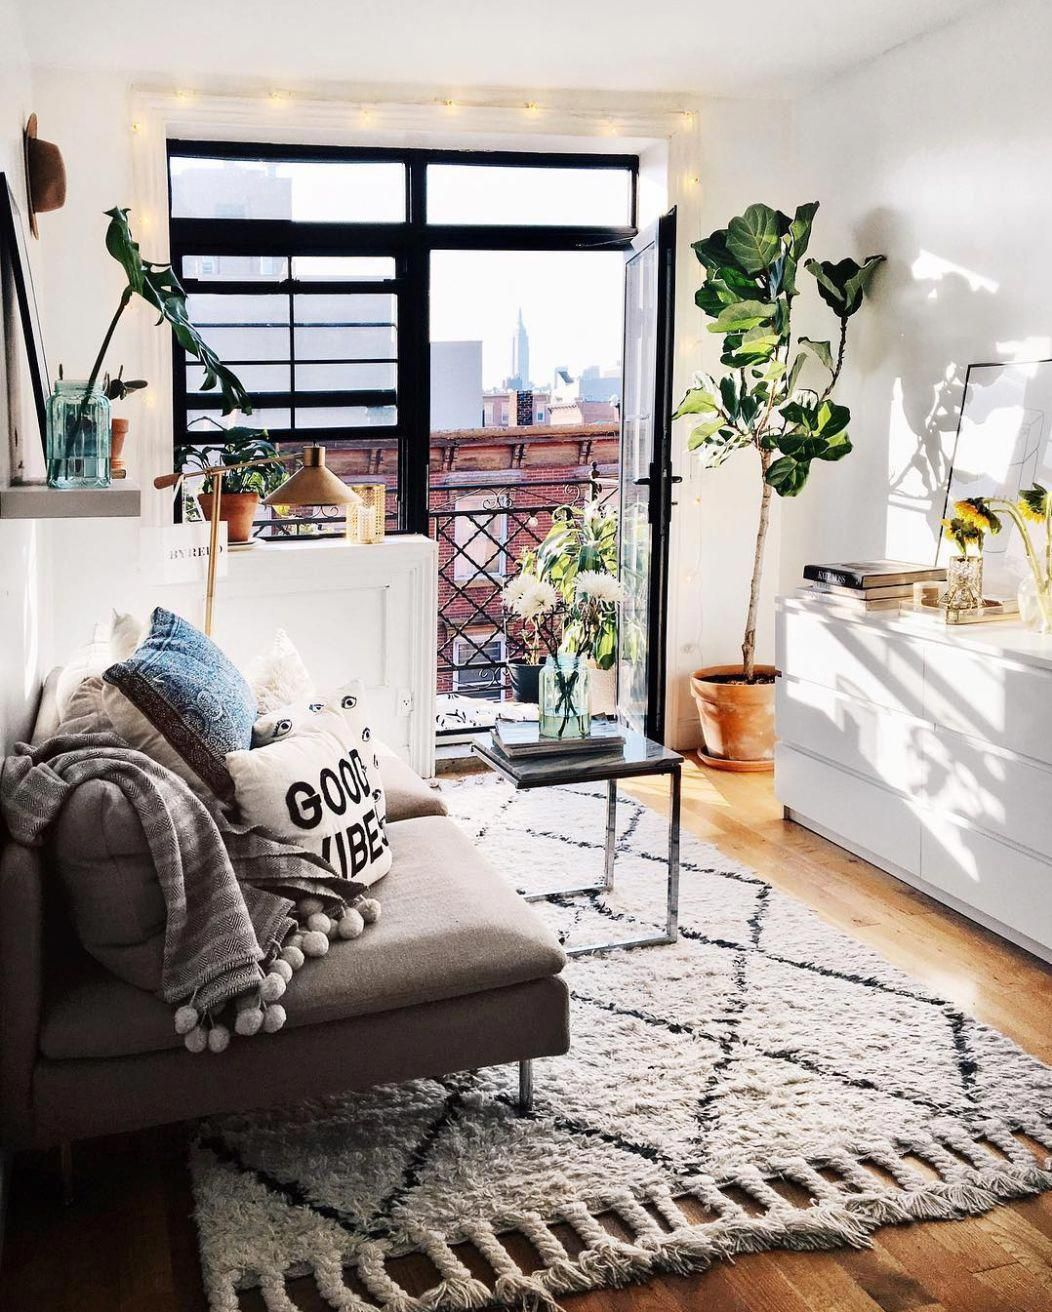 Cheapest Studio Apartments: 17 Studio Apartments That Are Chock Full Of Organizing